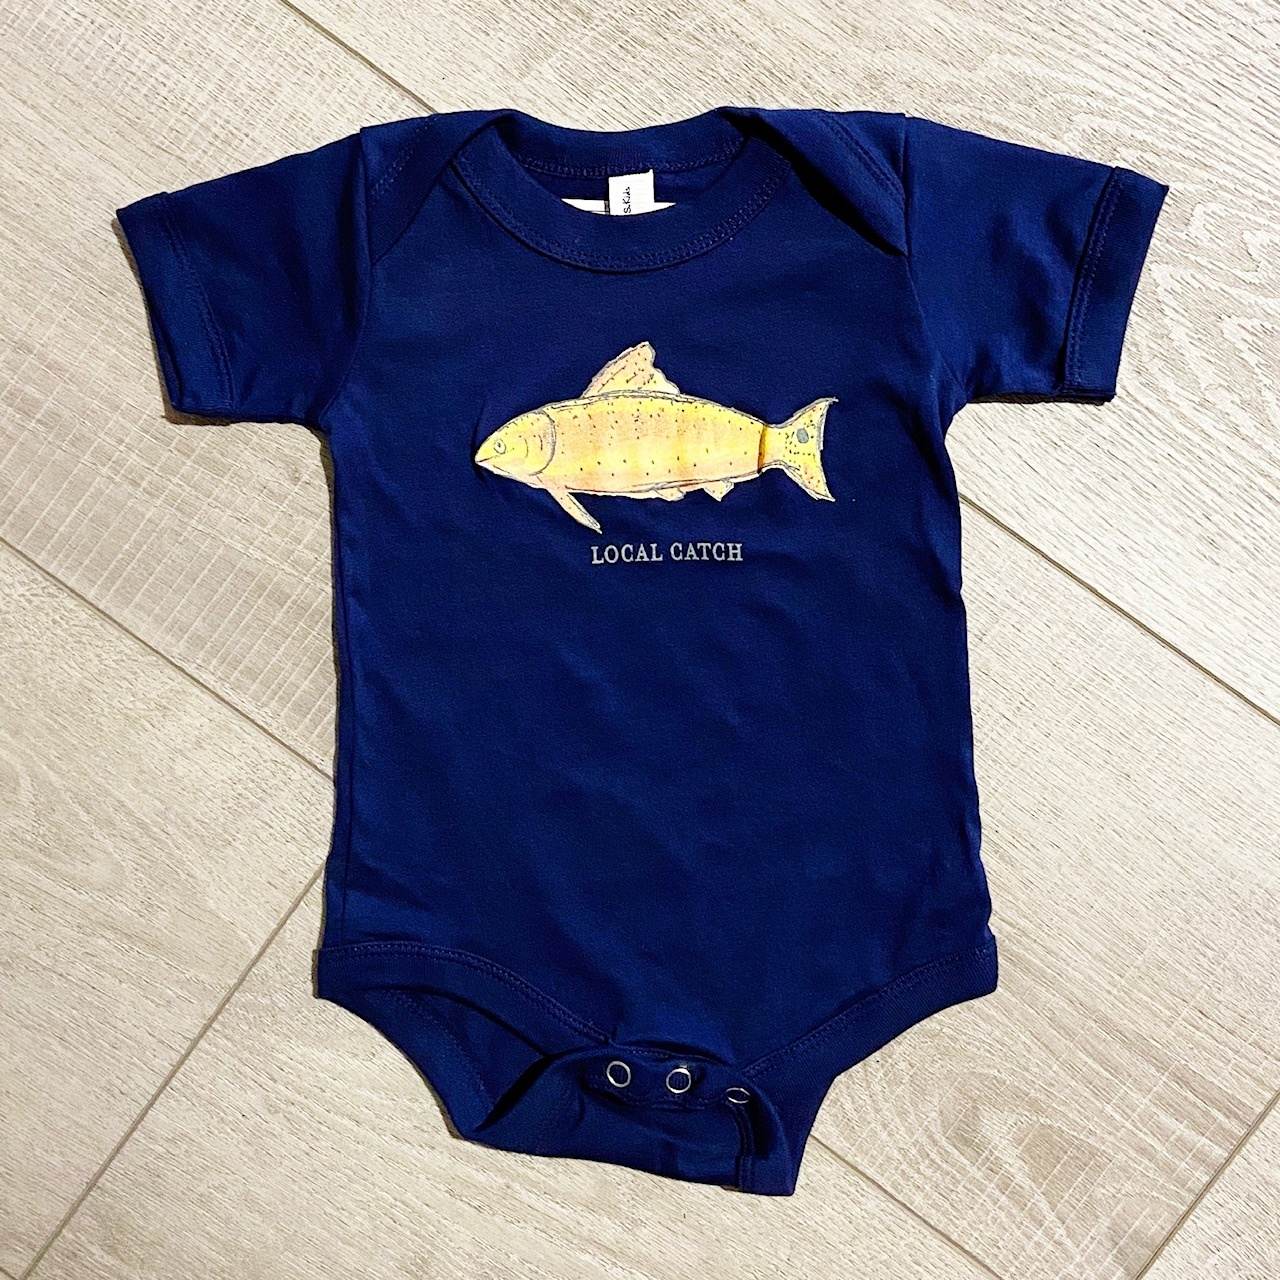 Two Sprouts Local Catch Onesie - Navy